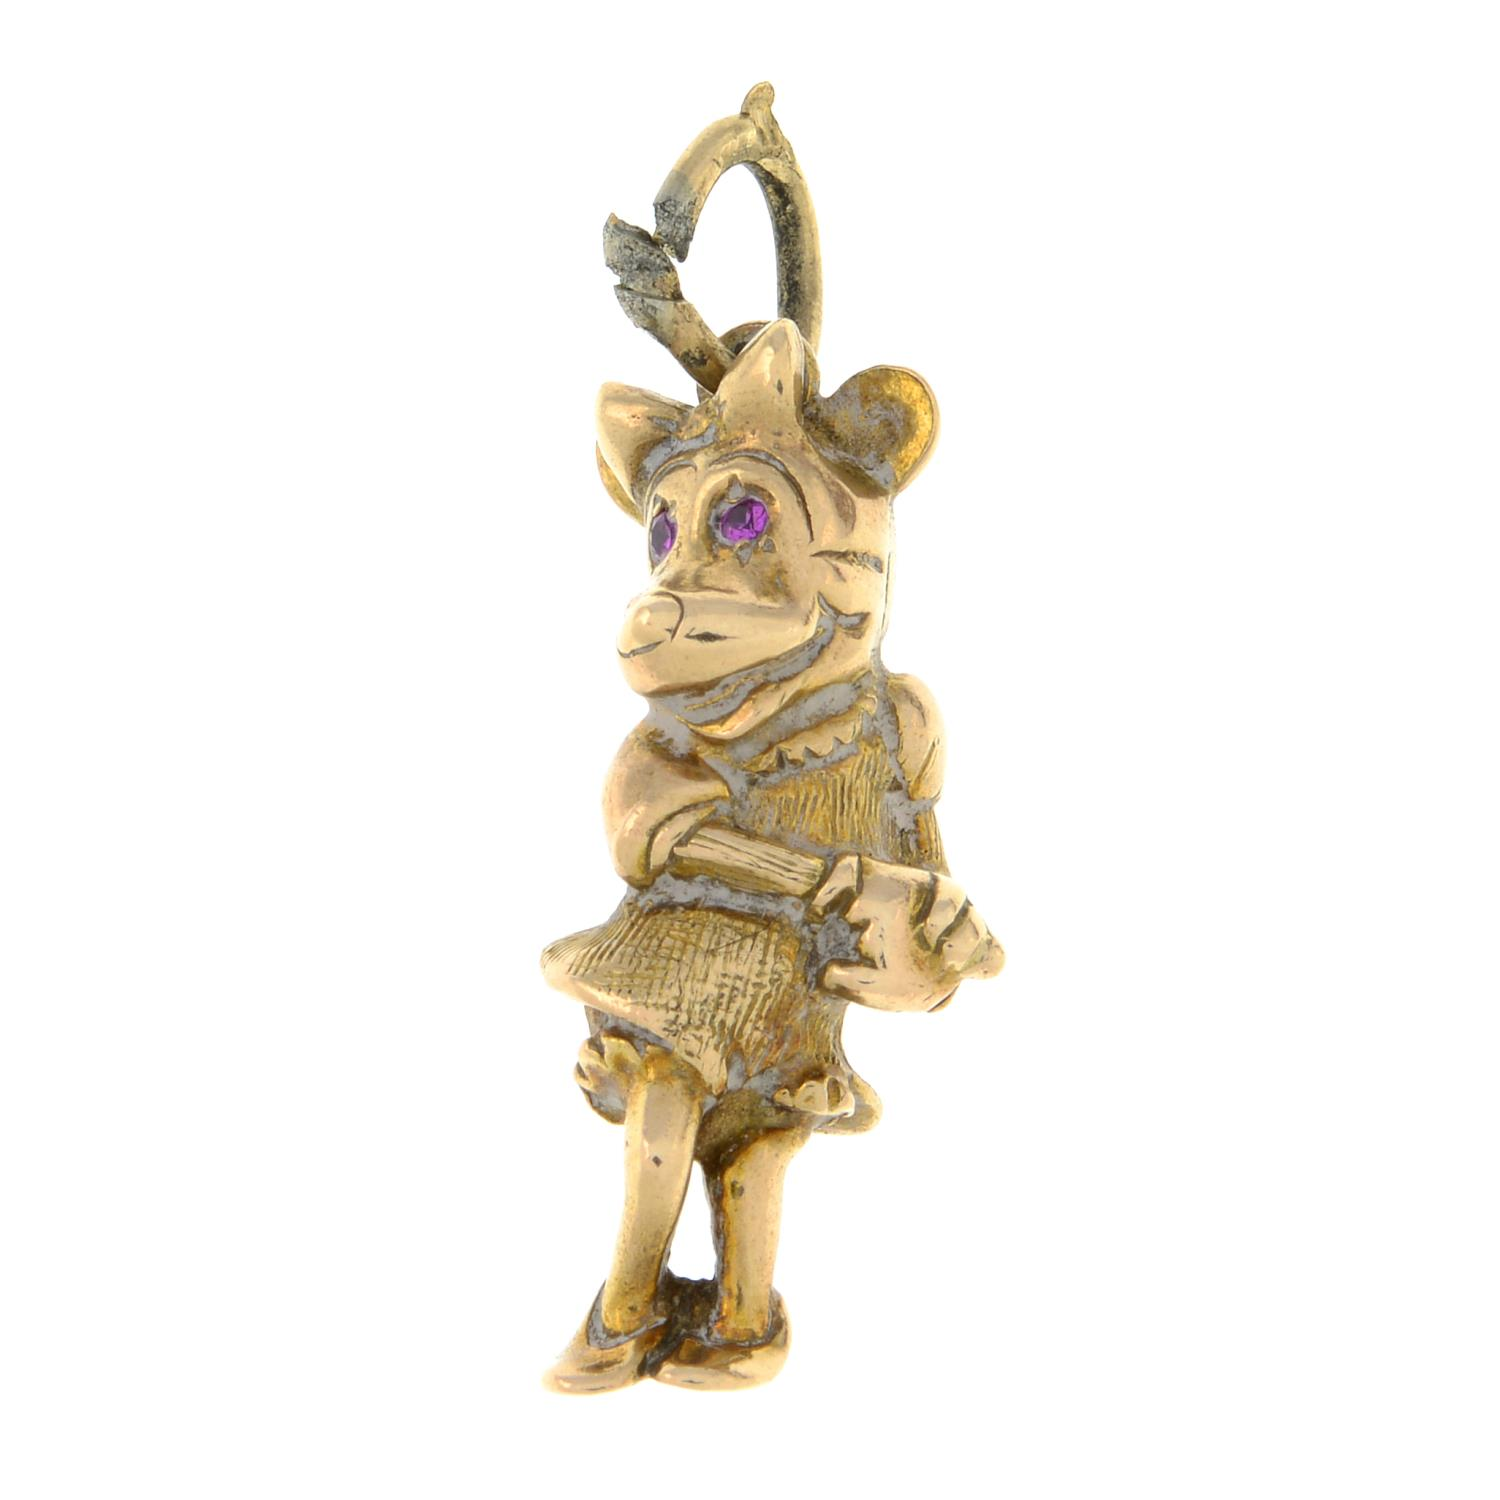 A 9ct gold 'Minnie Mouse' charm, with pink sapphire eye detail.Hallmarks for London.Length 2.9cms.